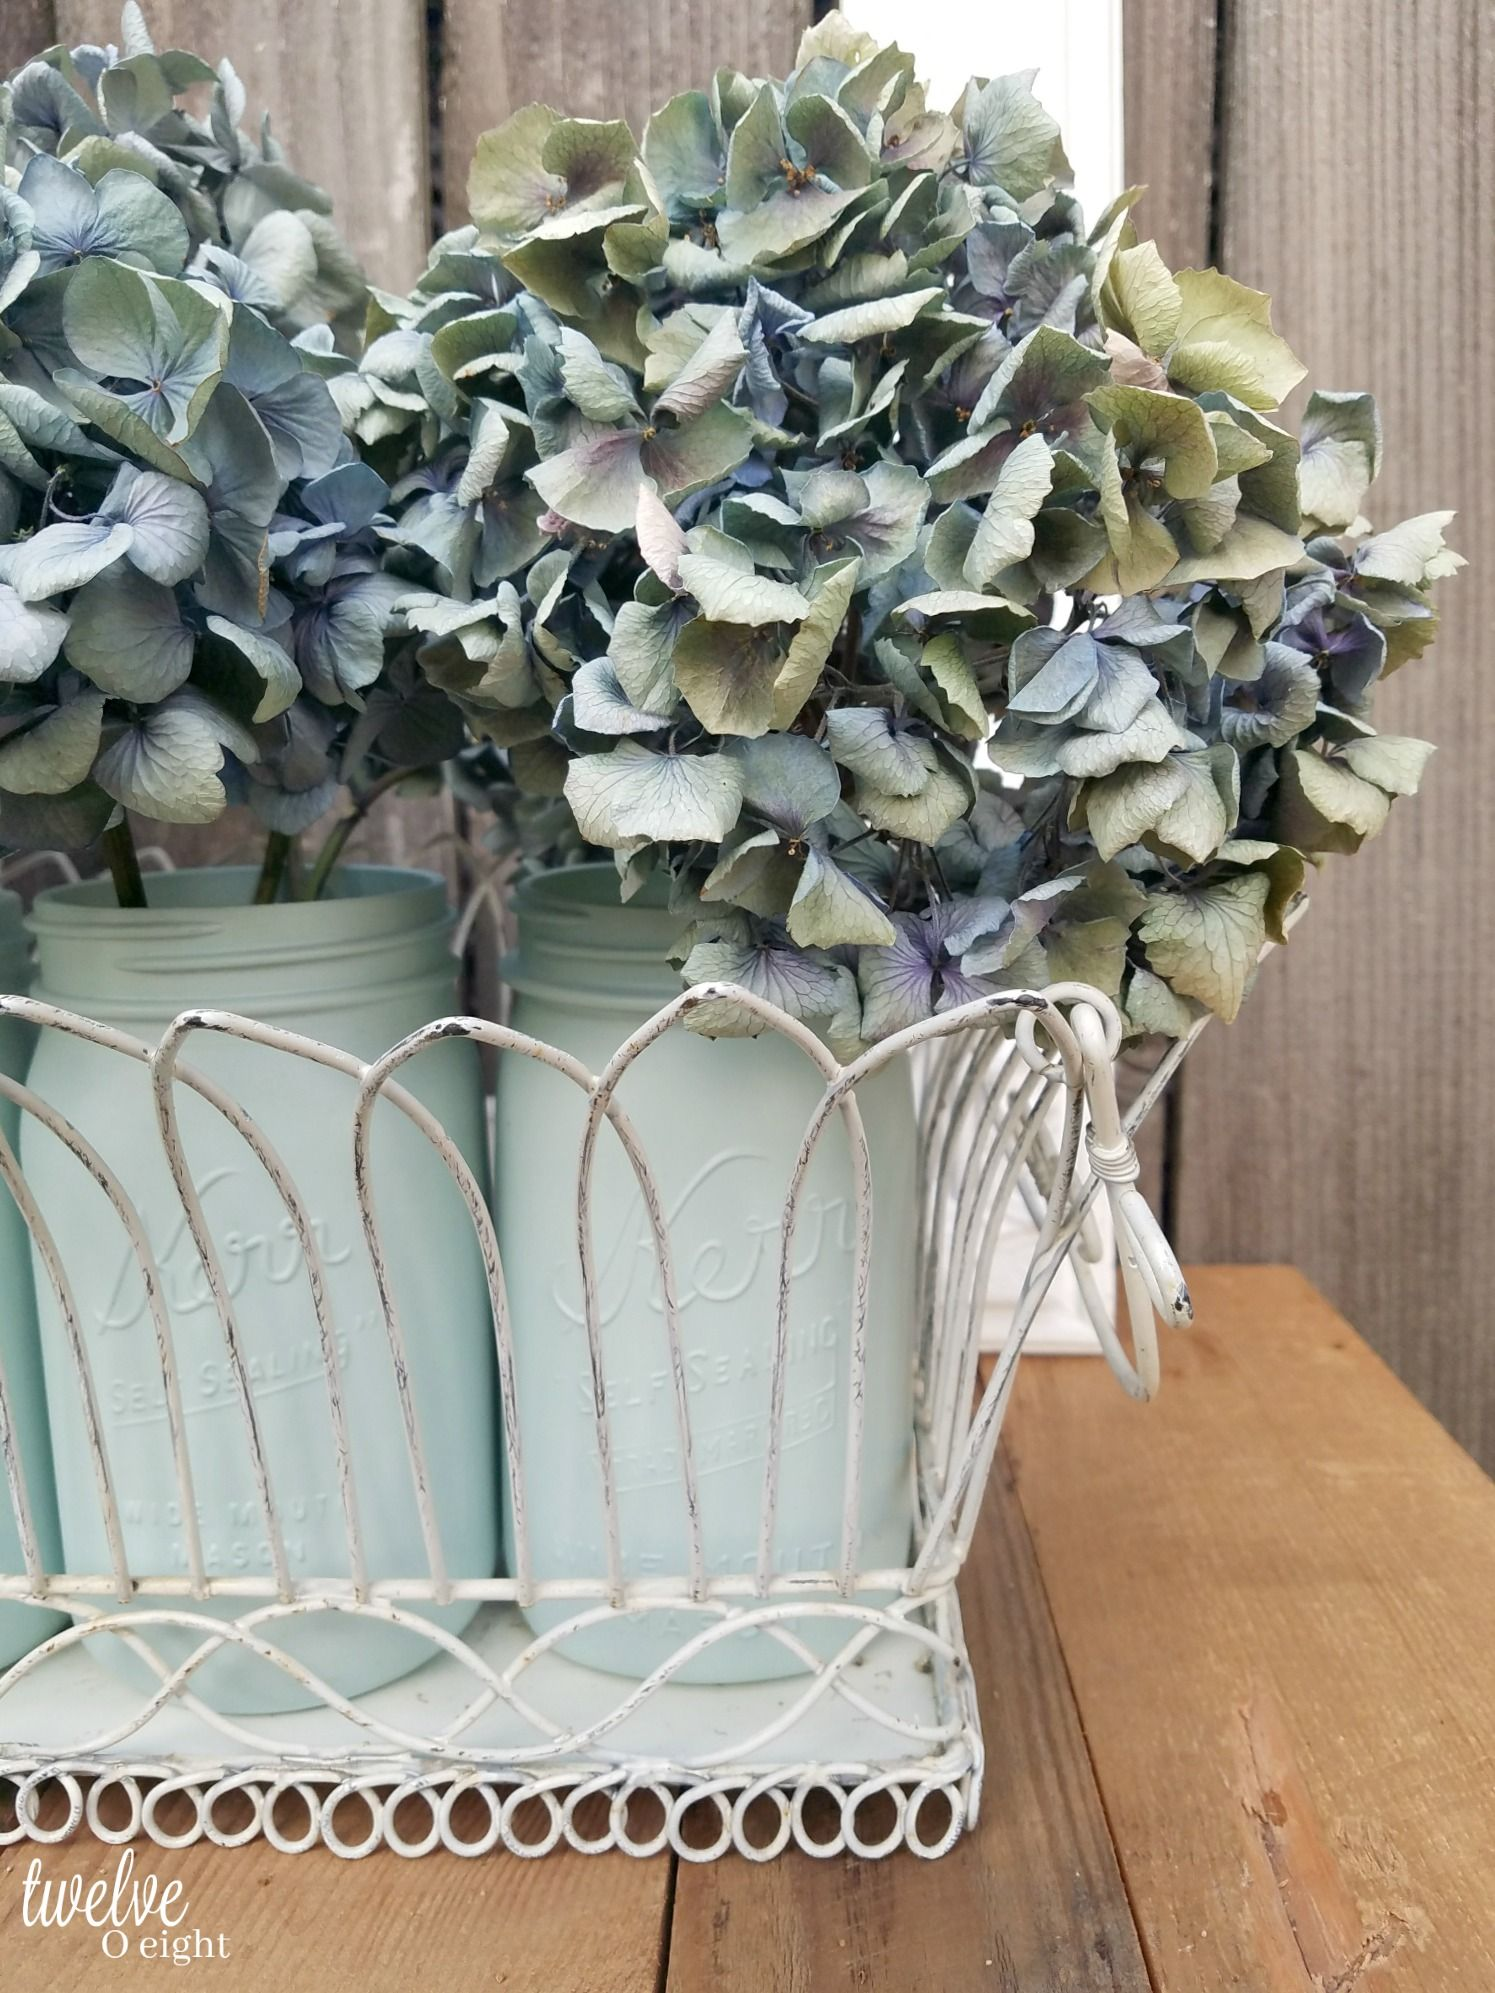 How to dry hydrangeas + slowing your roll - twelveOeight